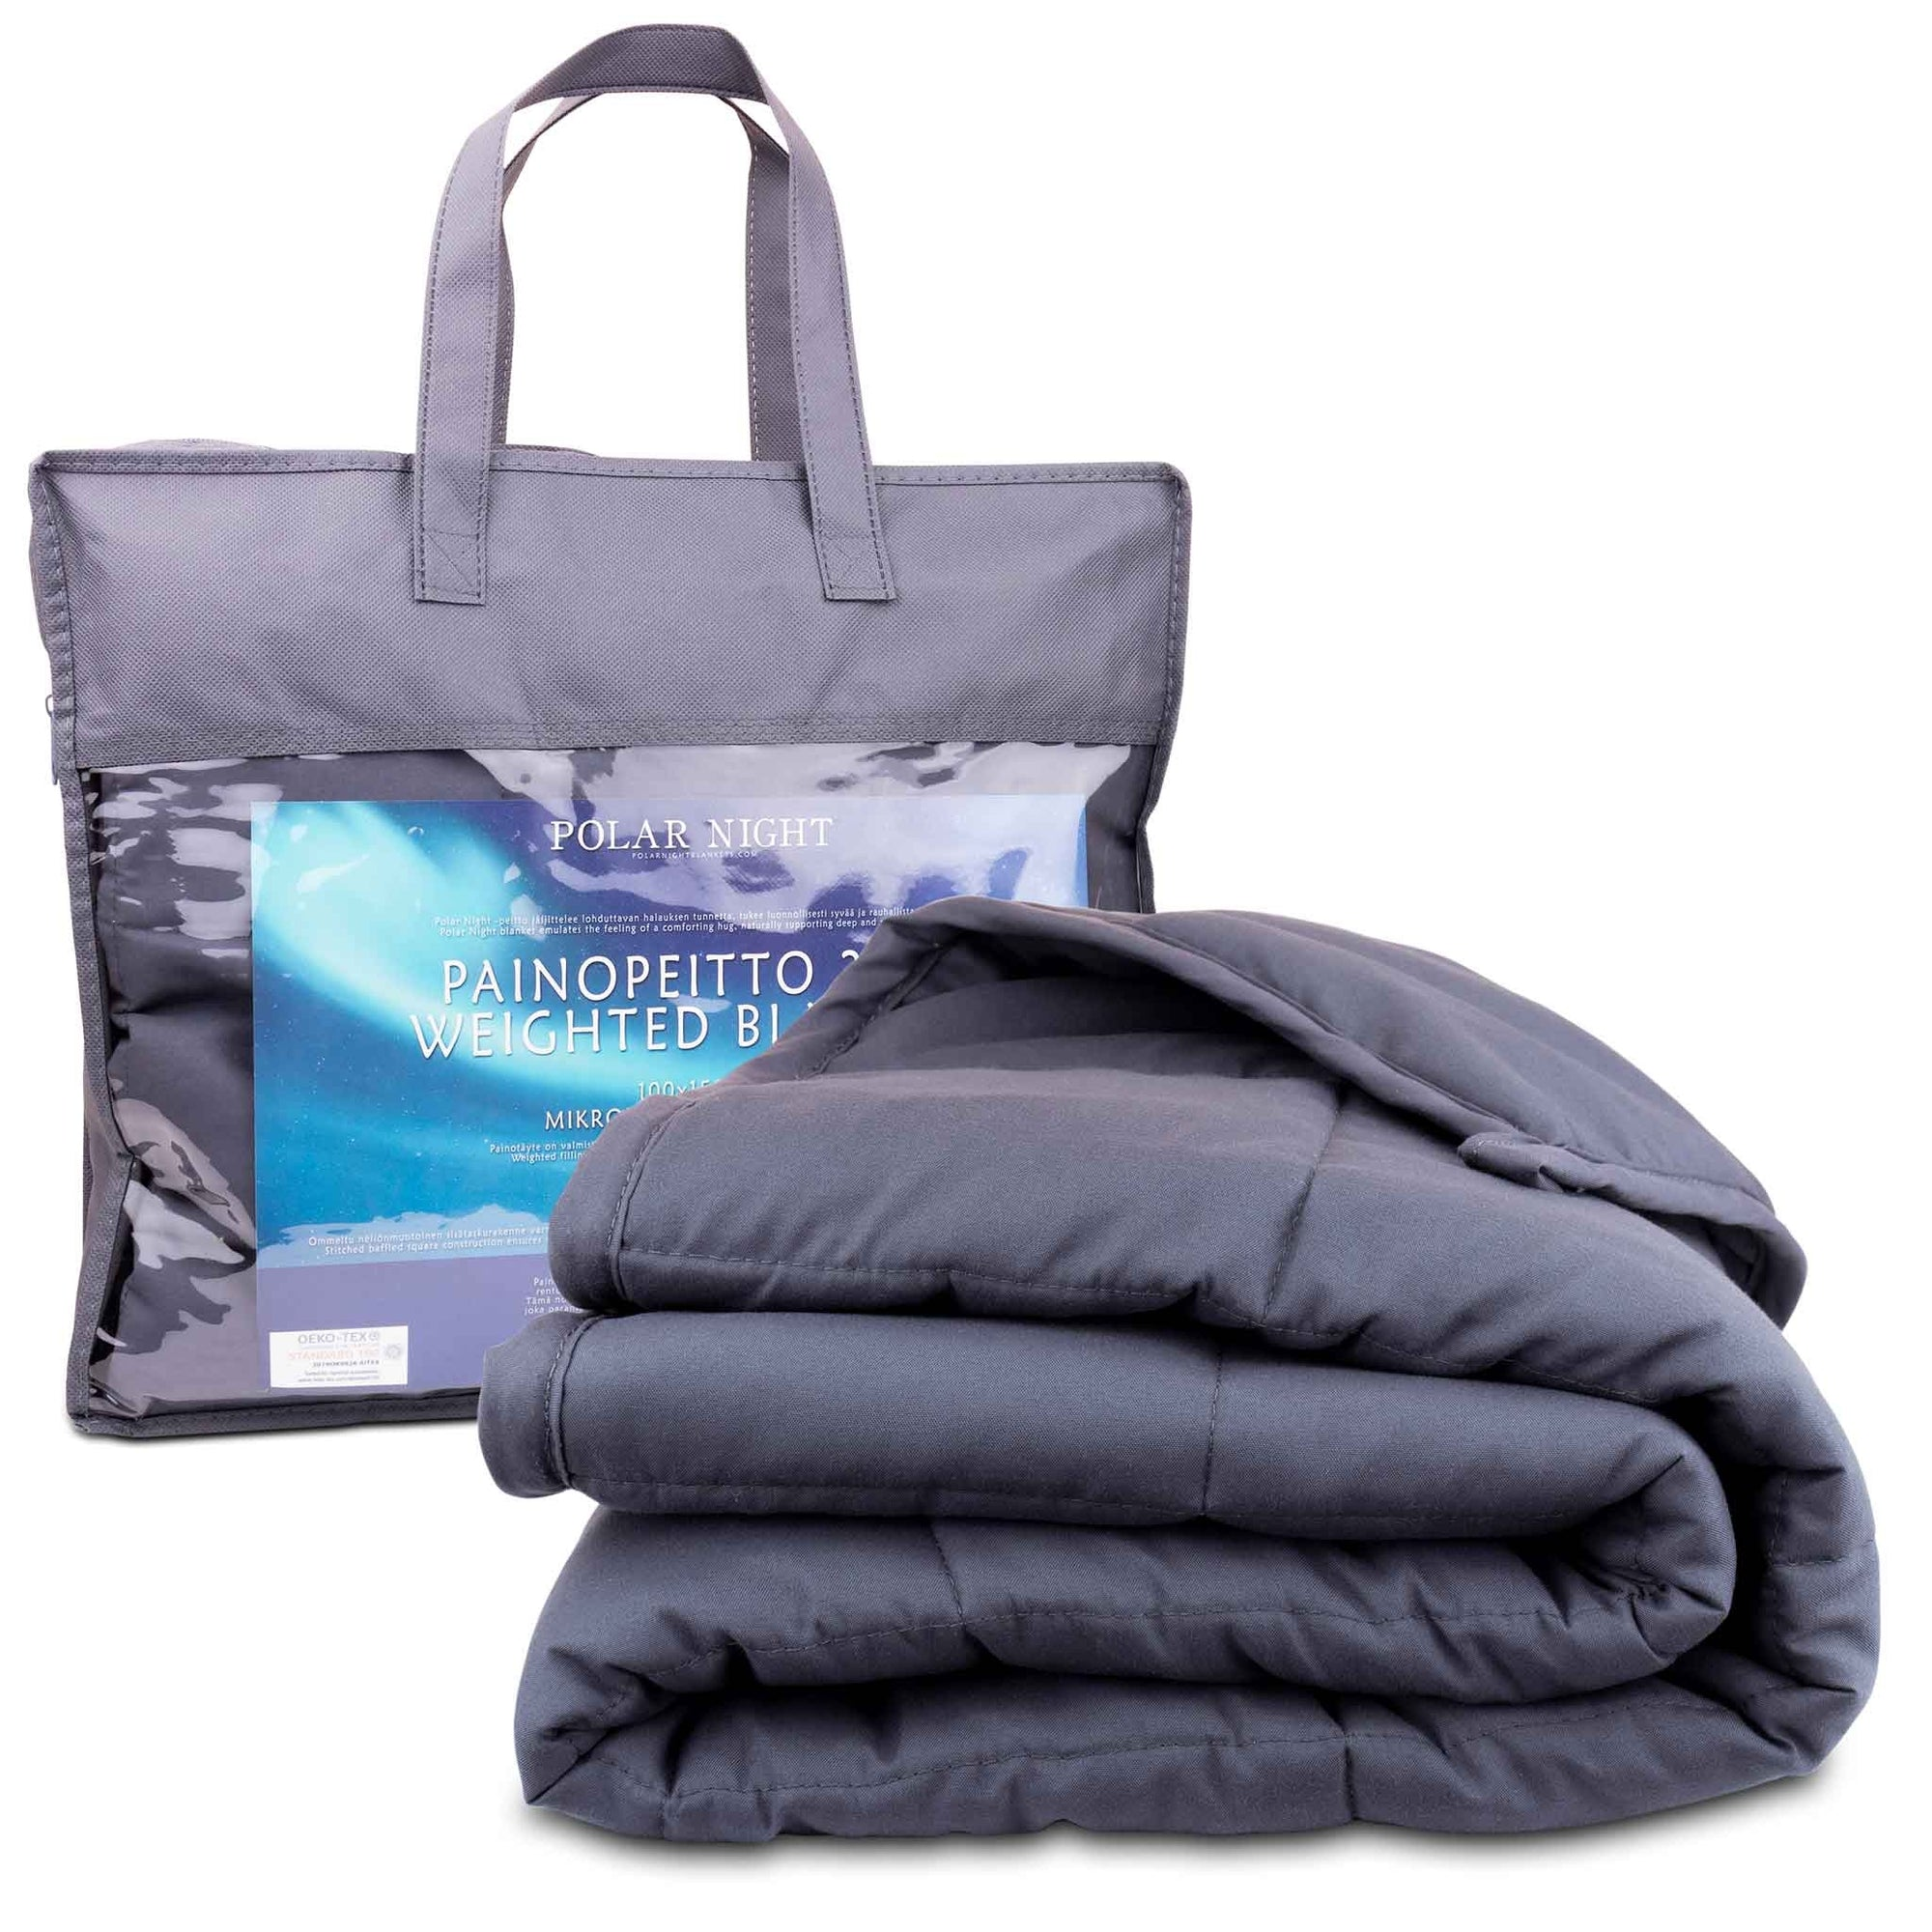 Polar Night weighted blanket 200x220cm (12-16kg)